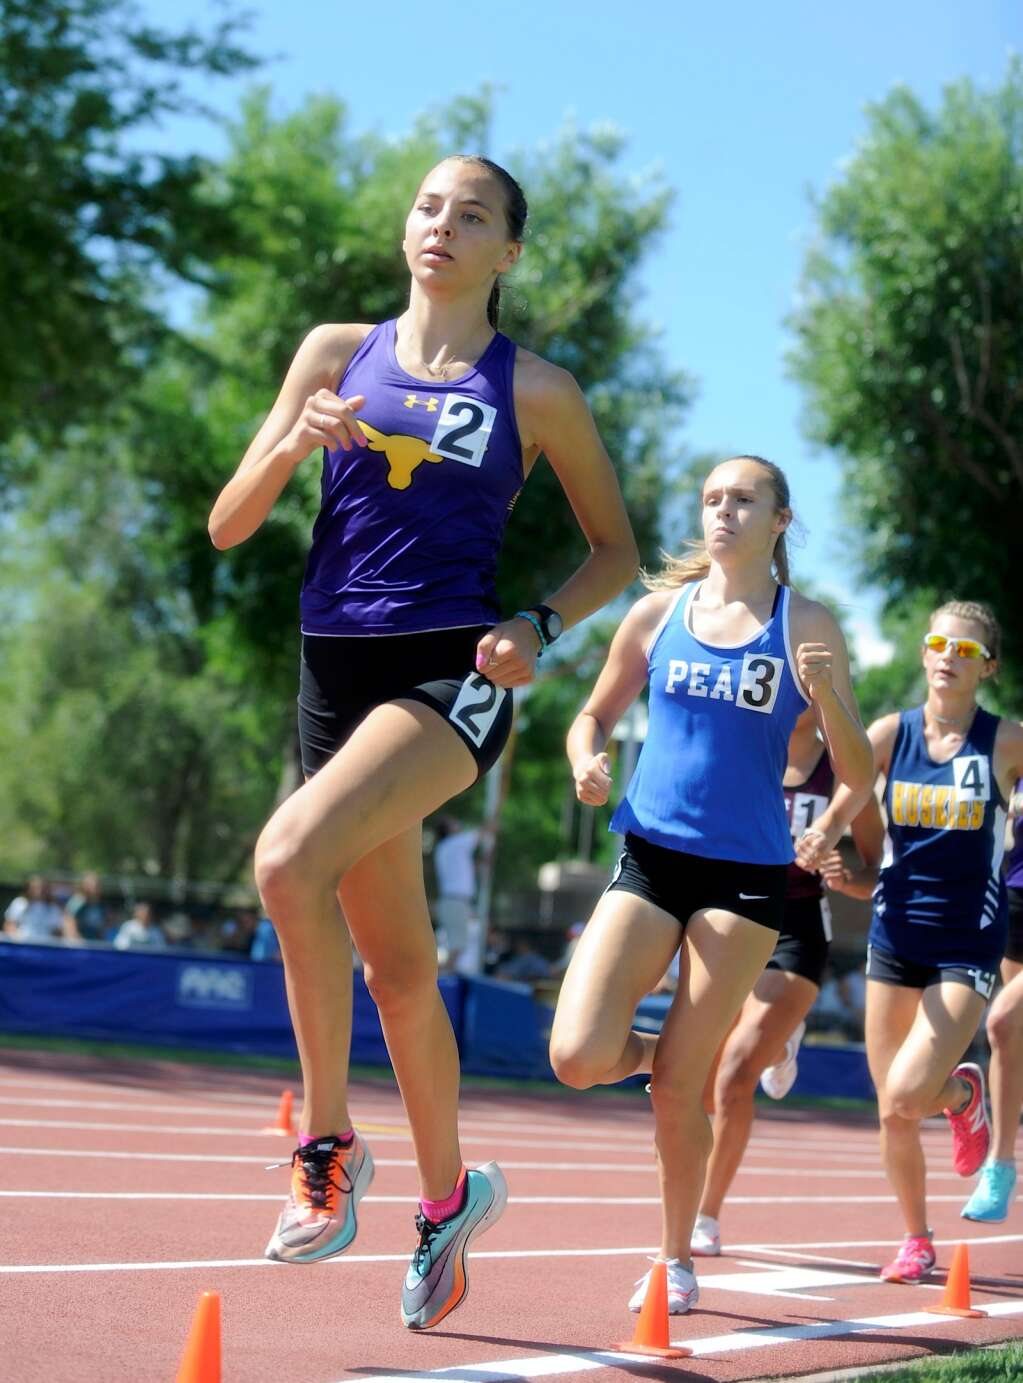 Basalt High School sophomore Katelyn Maley, left, competes in the Class 3A girls' 3,200-meter run on Friday, June 25, 2021, at the state championship meet in Lakewood. Maley finished second. Photo by Shelby Reardon/Steamboat Pilot & Today.